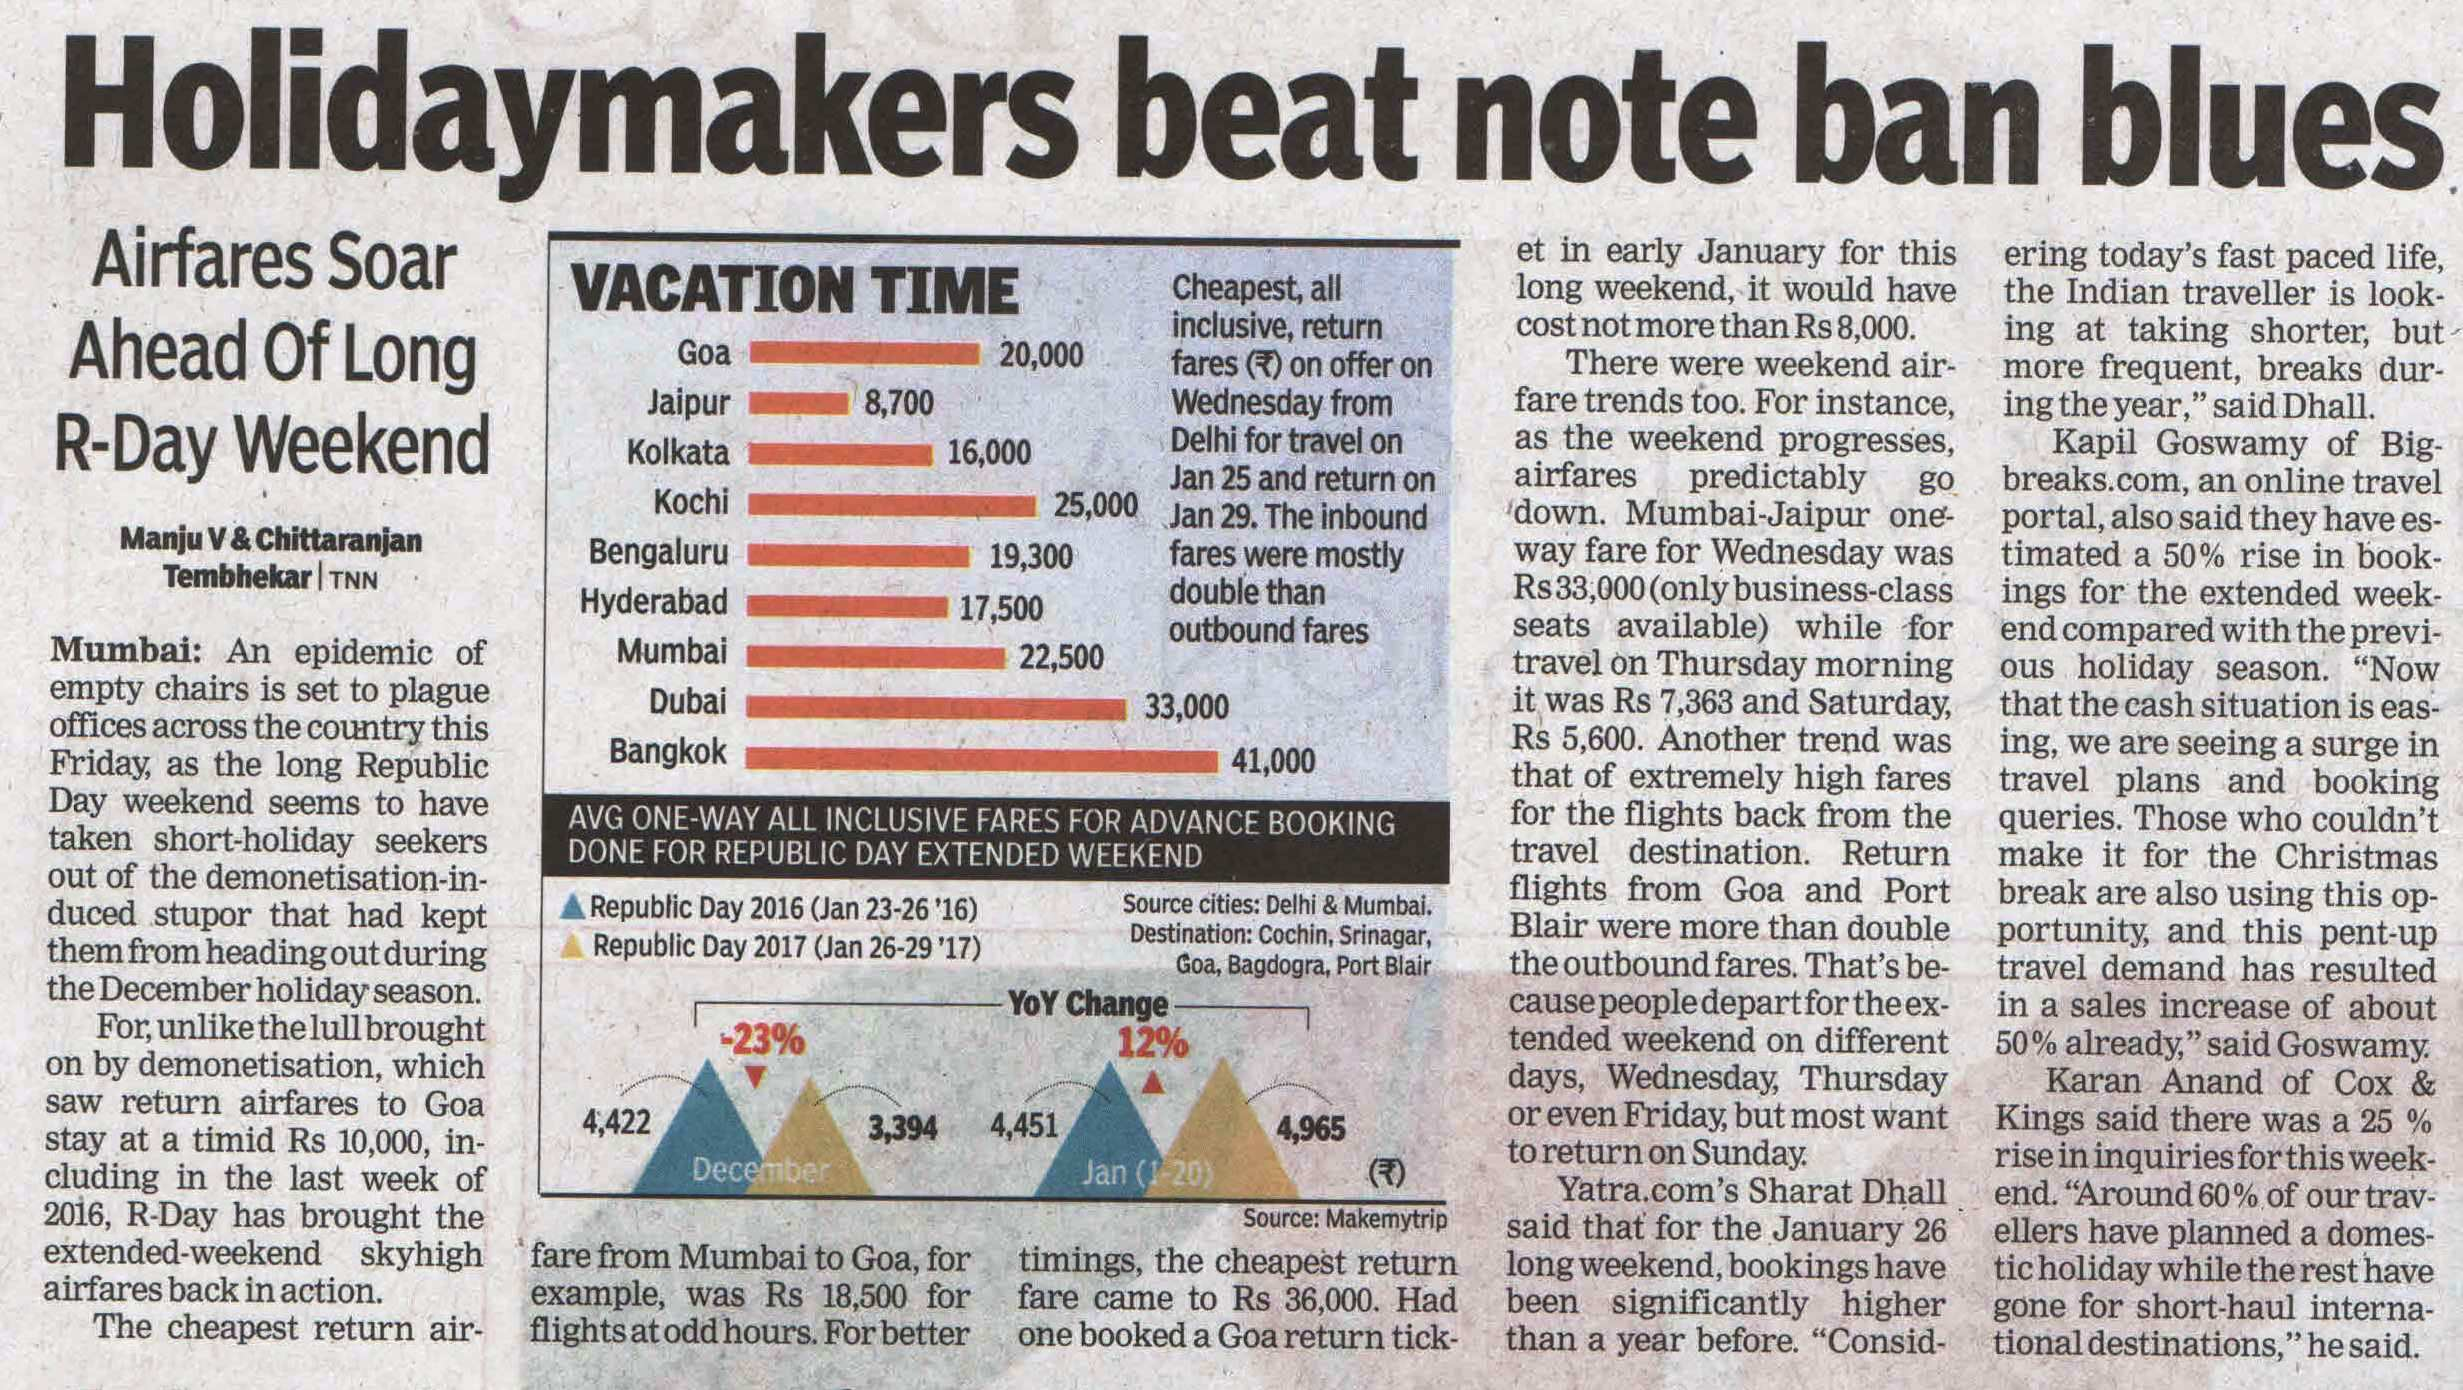 Big Breaks print coverage in Times of India